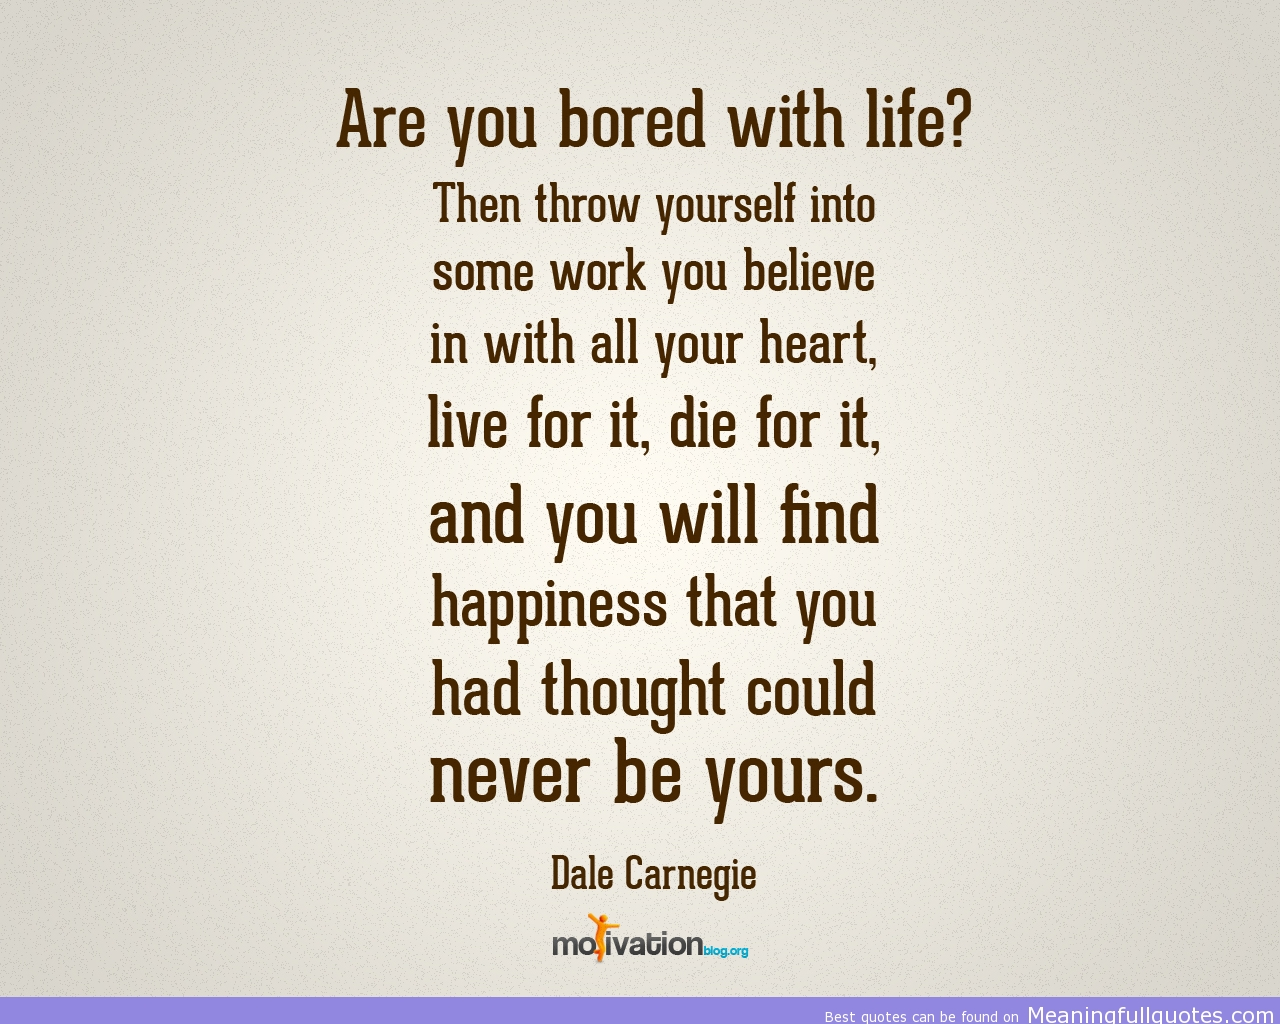 This Is So Boring Quotes: Famous Quotes About 'Bored'